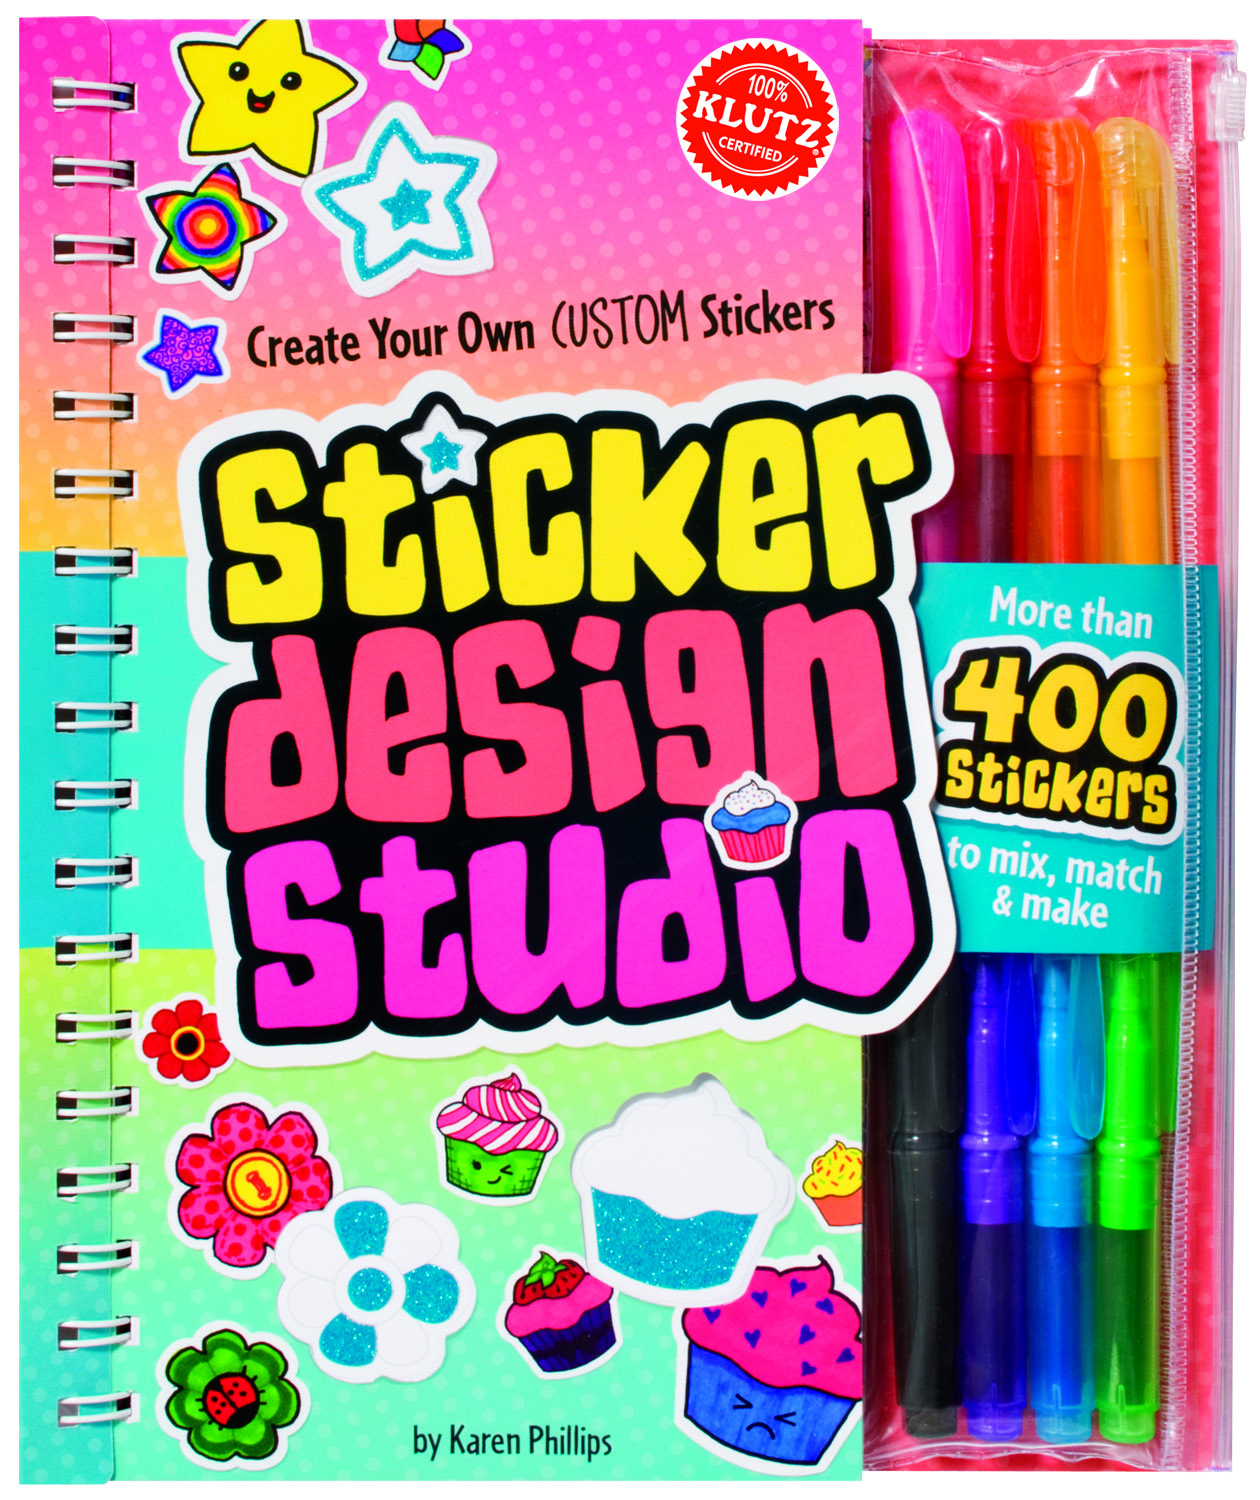 My kids absolutely love stickers so we just had to try out the sticker design studio from klutz now even though this book says its for ages 8 an older